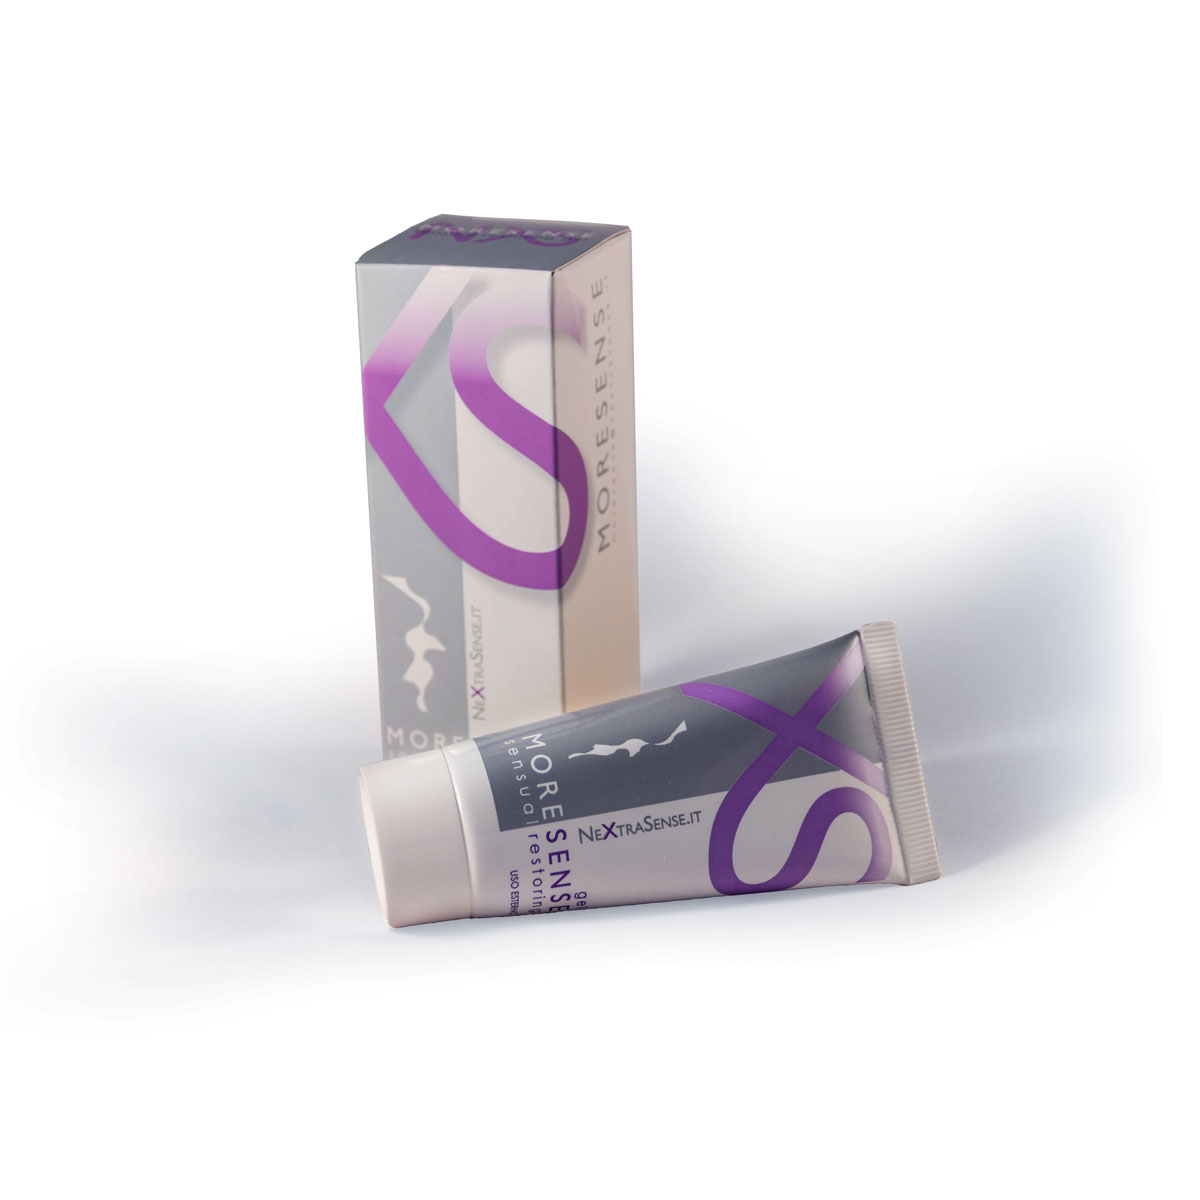 moresense-gel-intimo-30ml